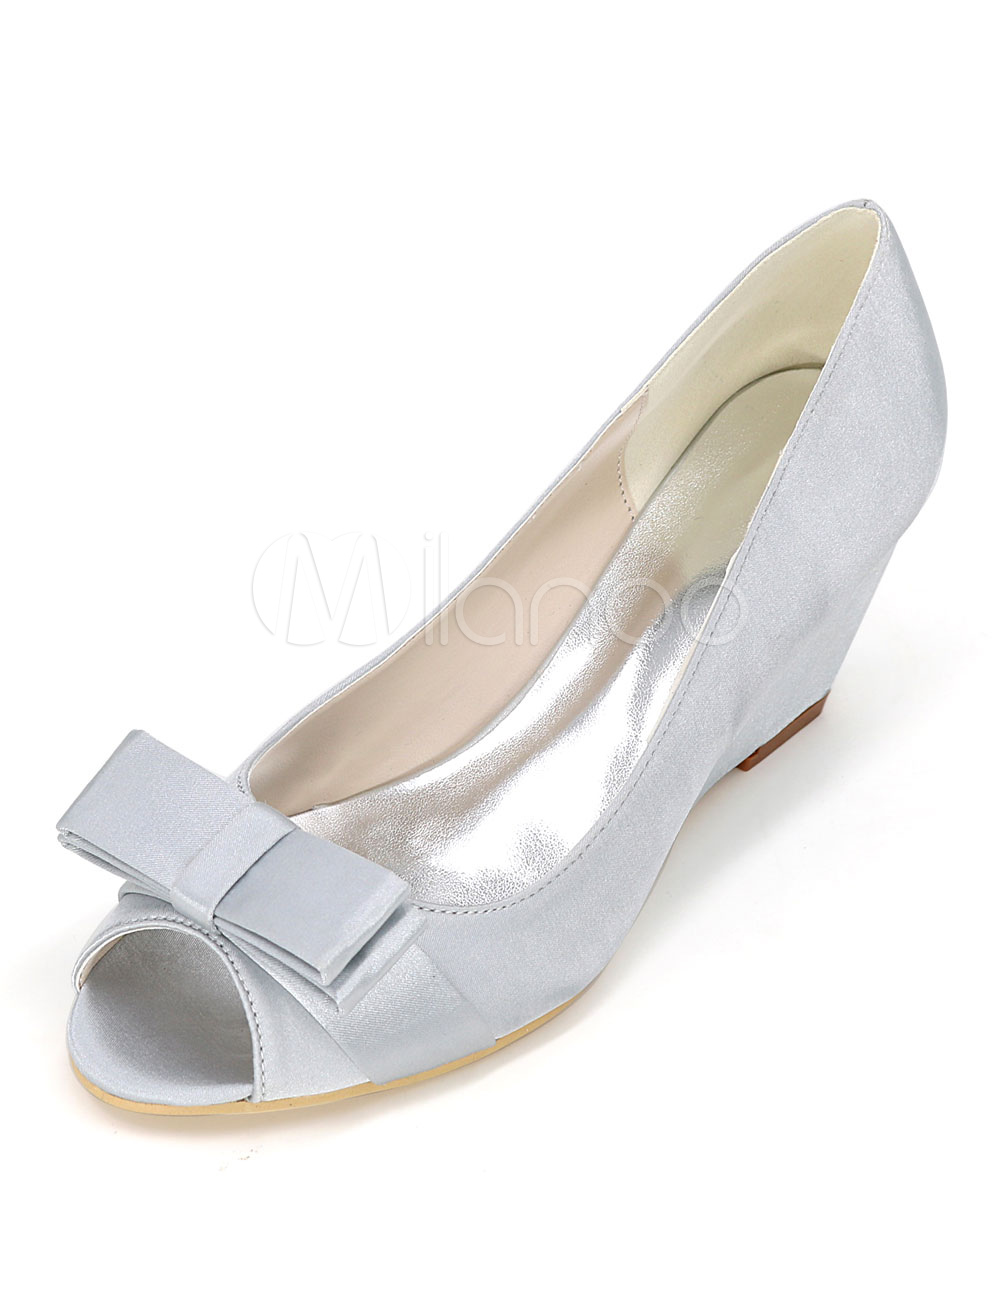 Silver Wedding Shoes Satin Peep Toe Bow Slip On Bridal Shoes Women Wedge Shoes